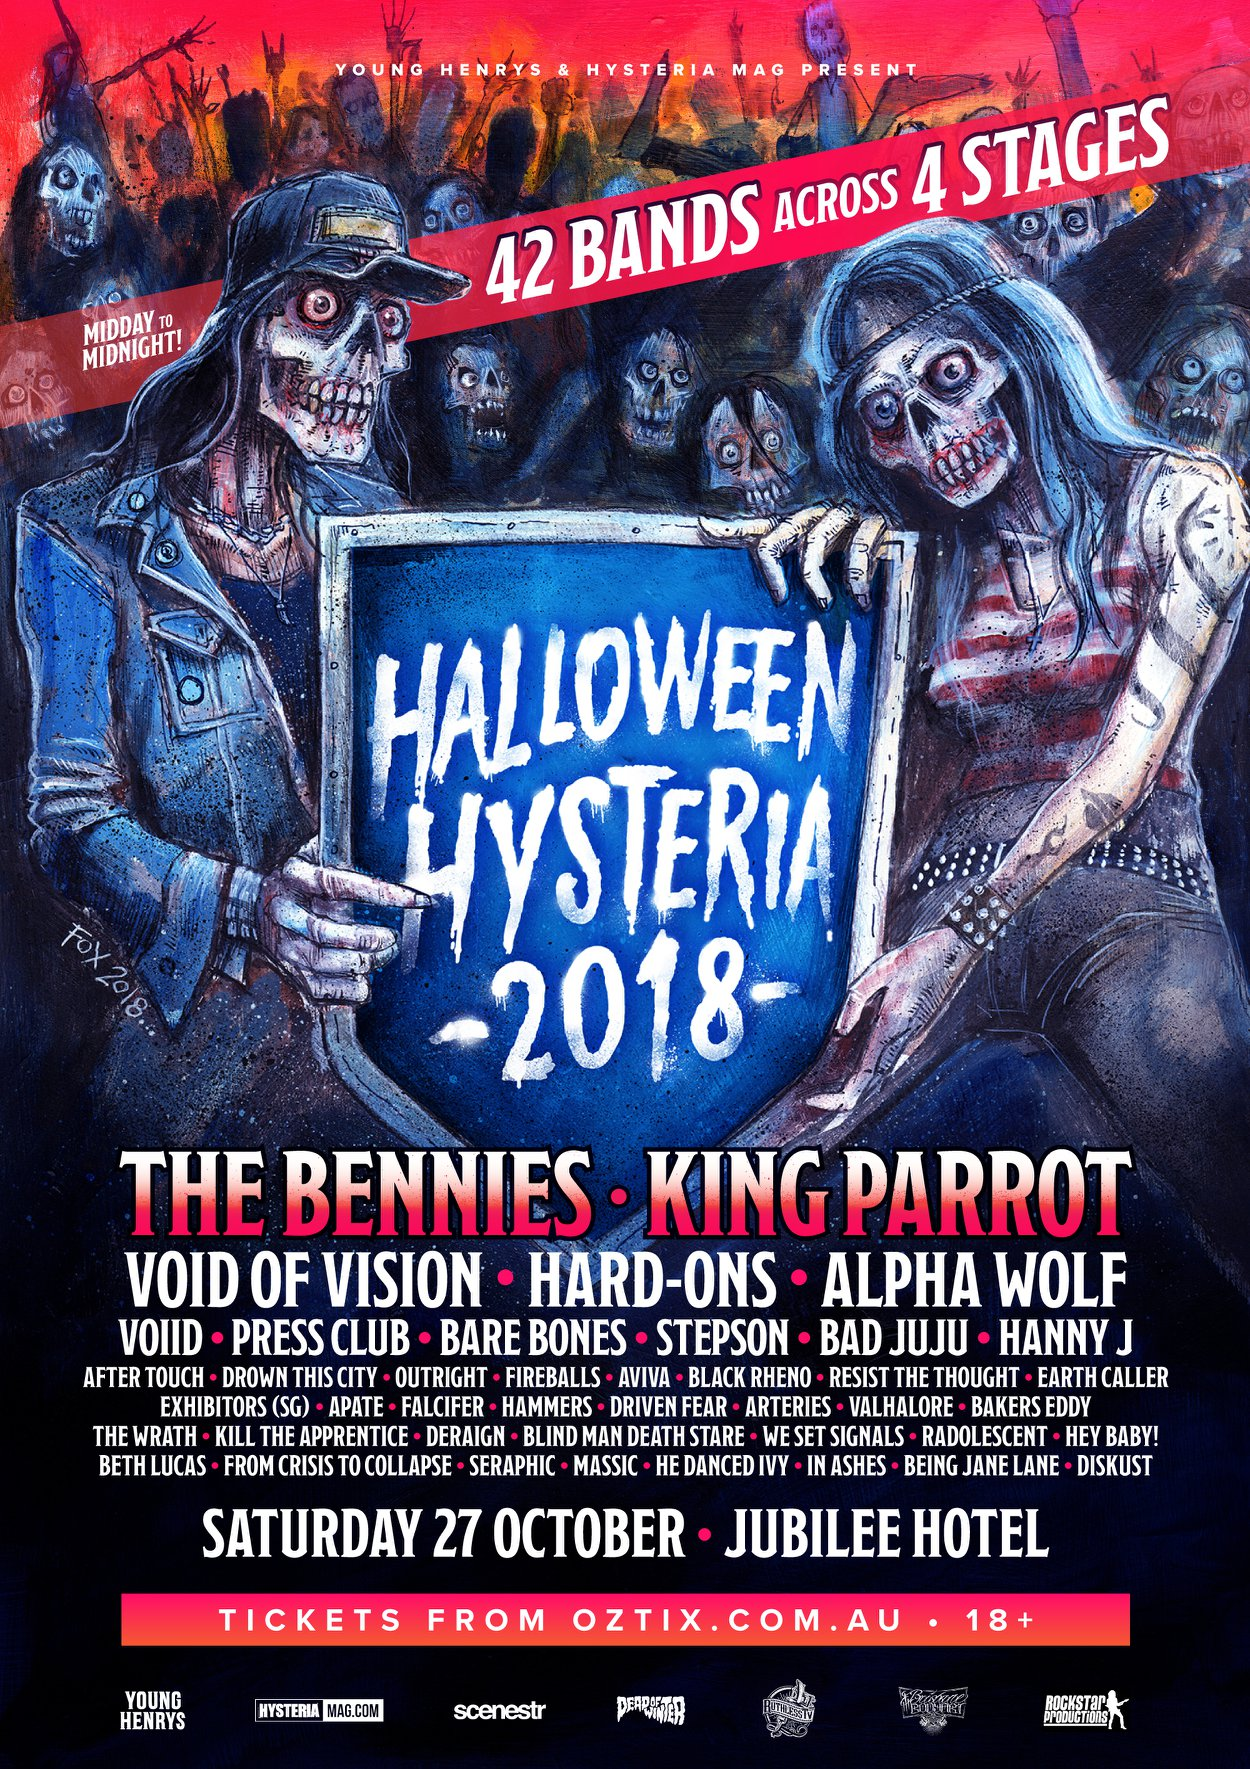 The Bennies will headline Halloween Hysteria 27 October